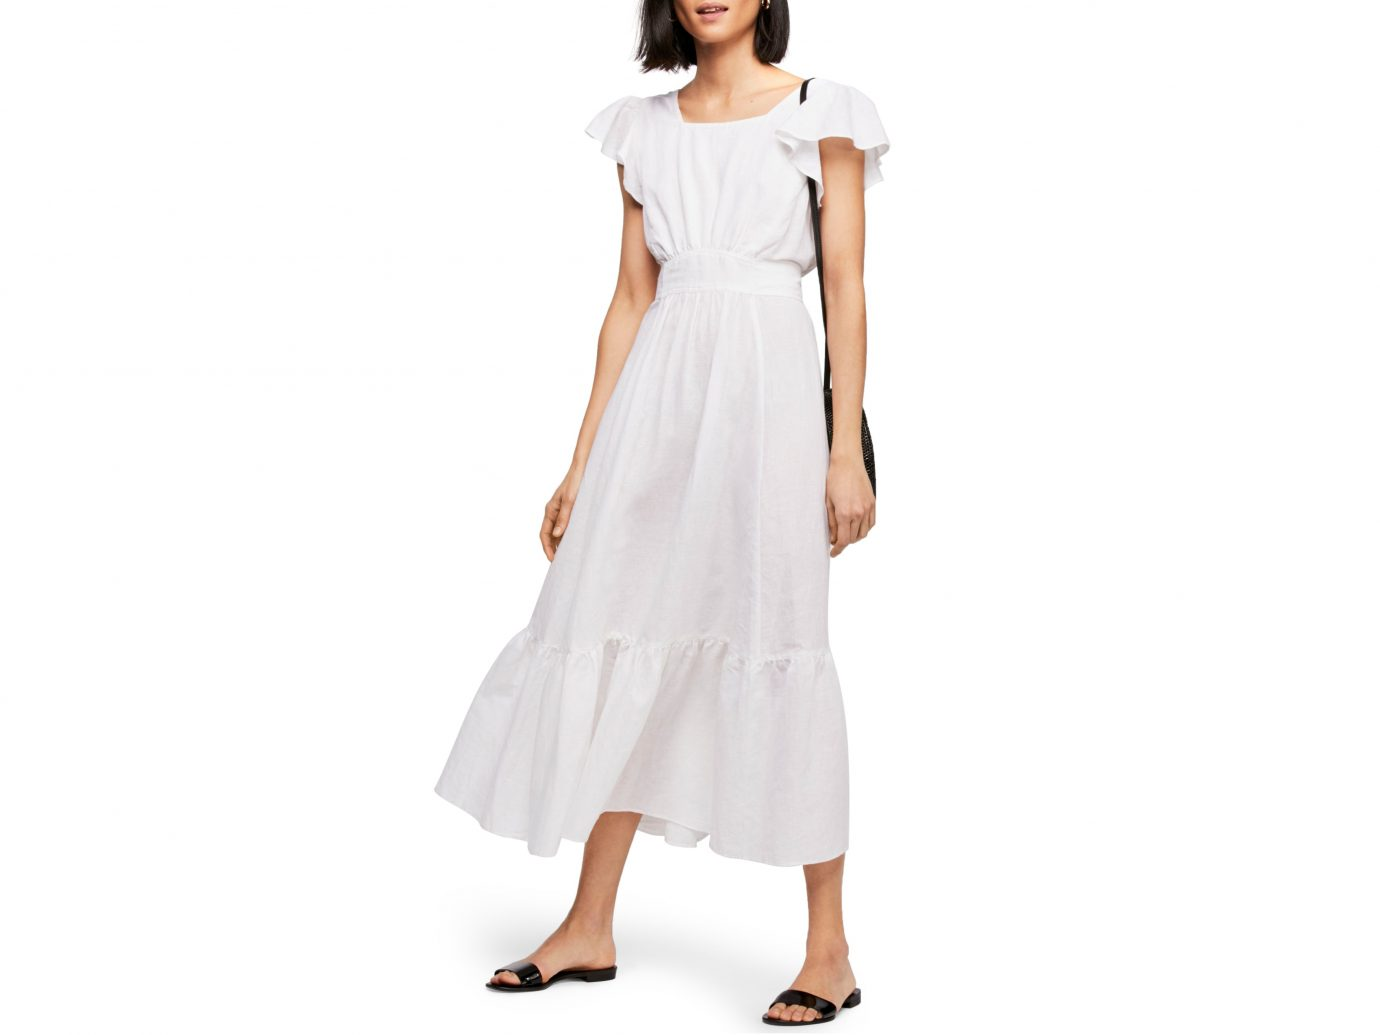 Free People Endless Summer Takin' a Chance Midi Dress